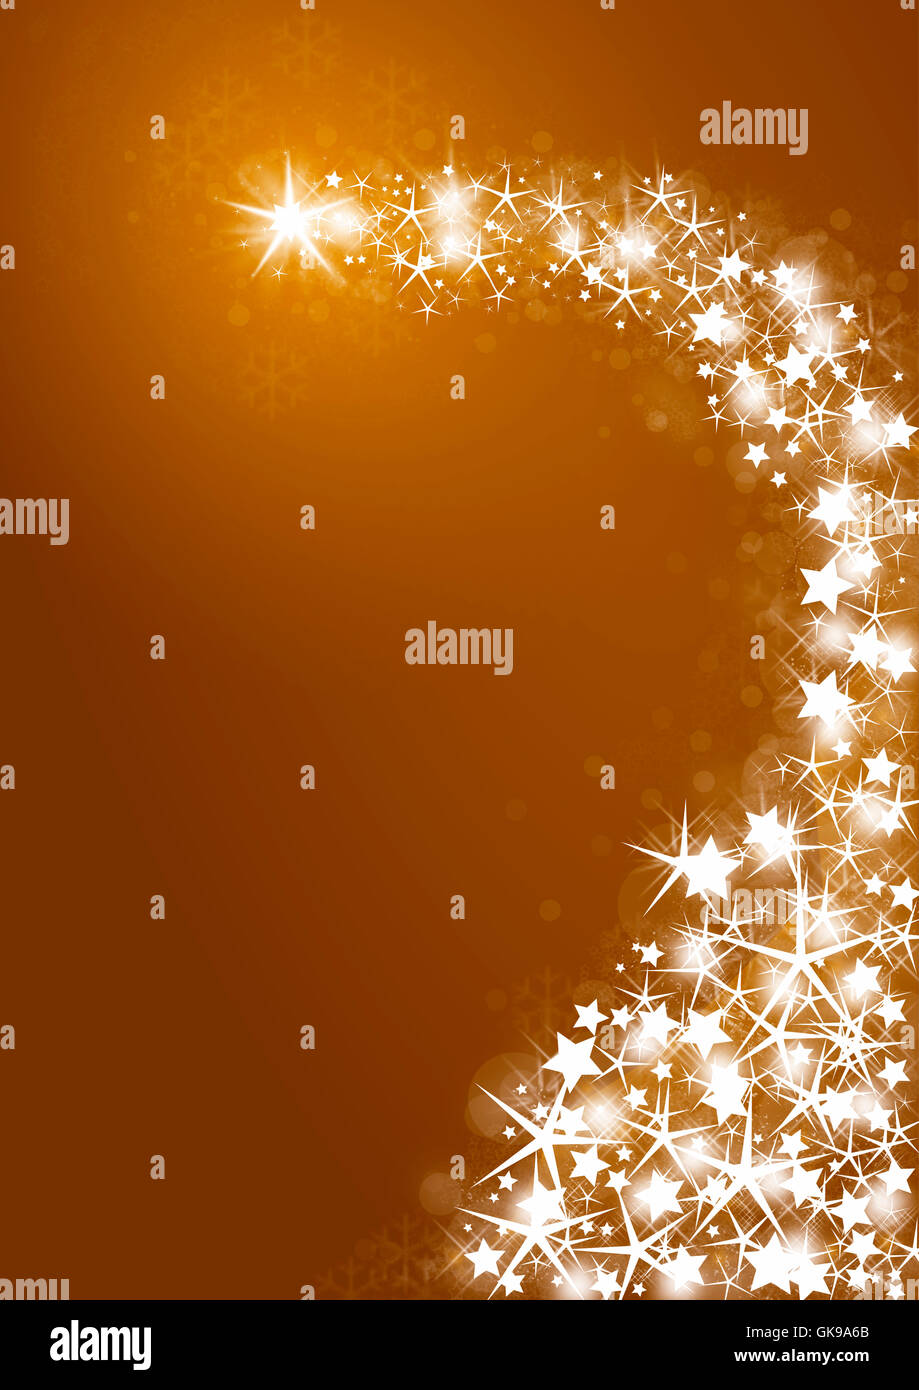 golden christmas background with bright stars - Stock Image